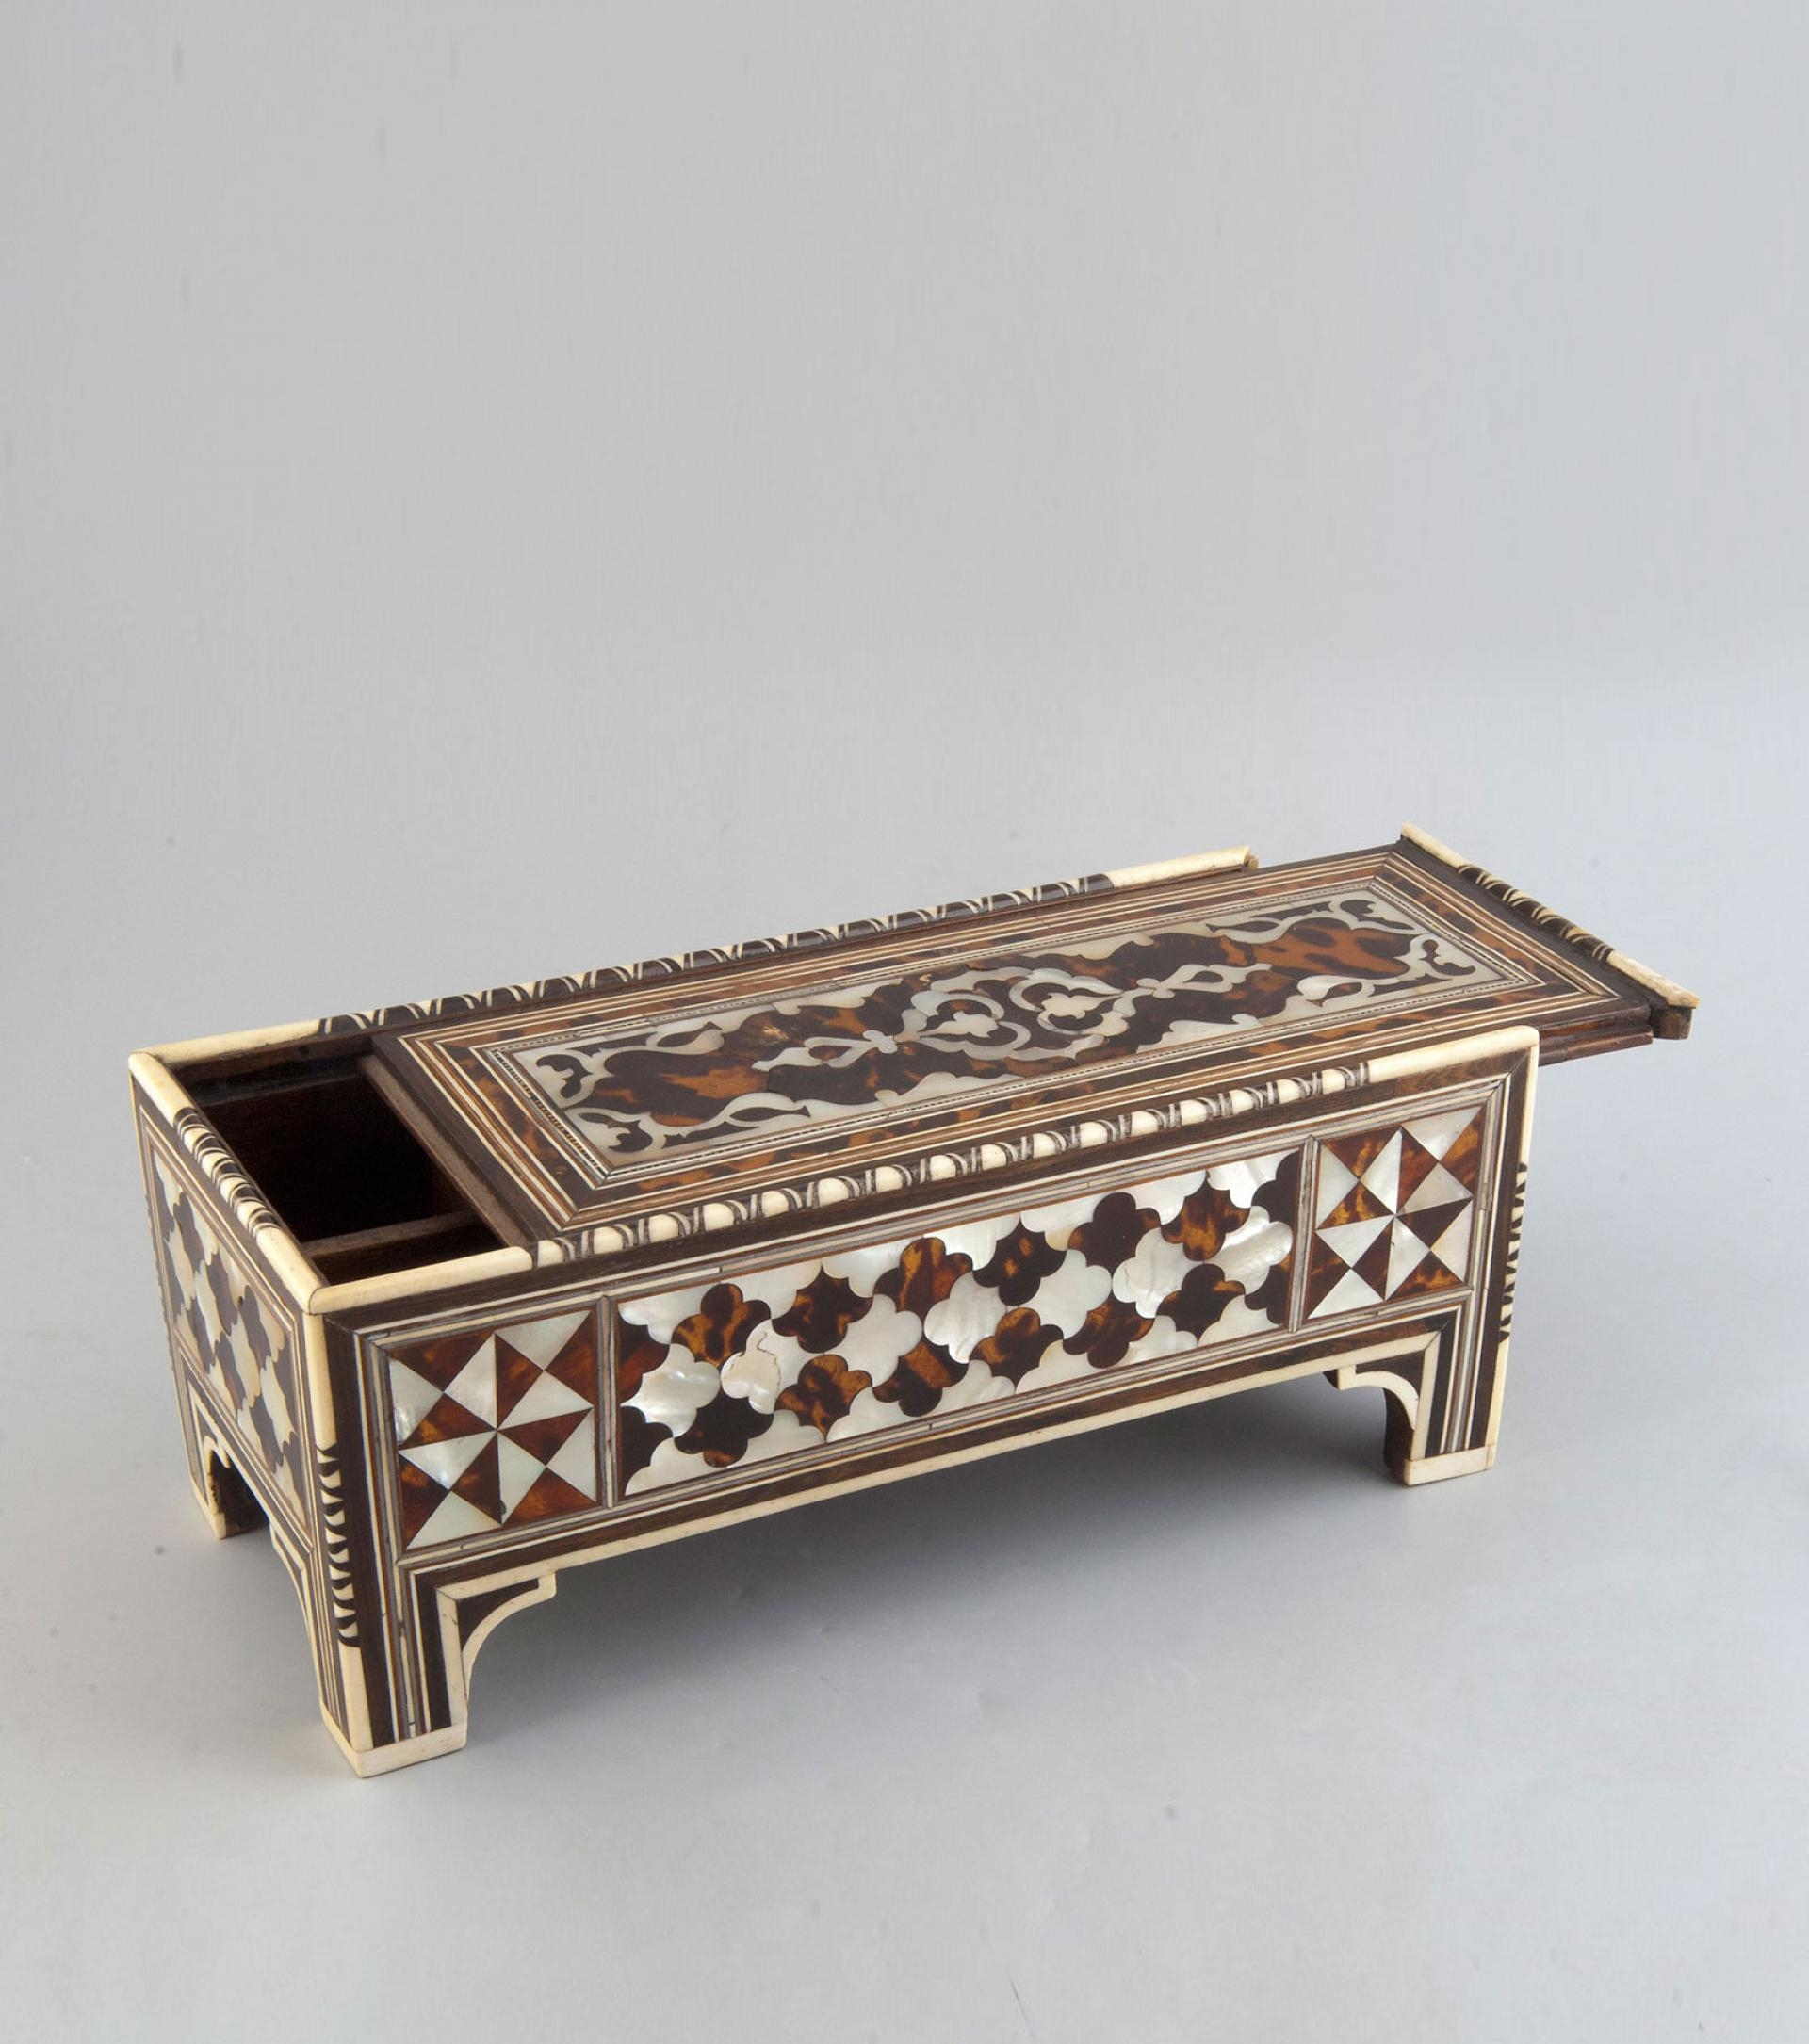 SHM15639 - Calligrapher's tool caseWood - mother of pearl - ivoryOttoman, 18th centuryIstanbul